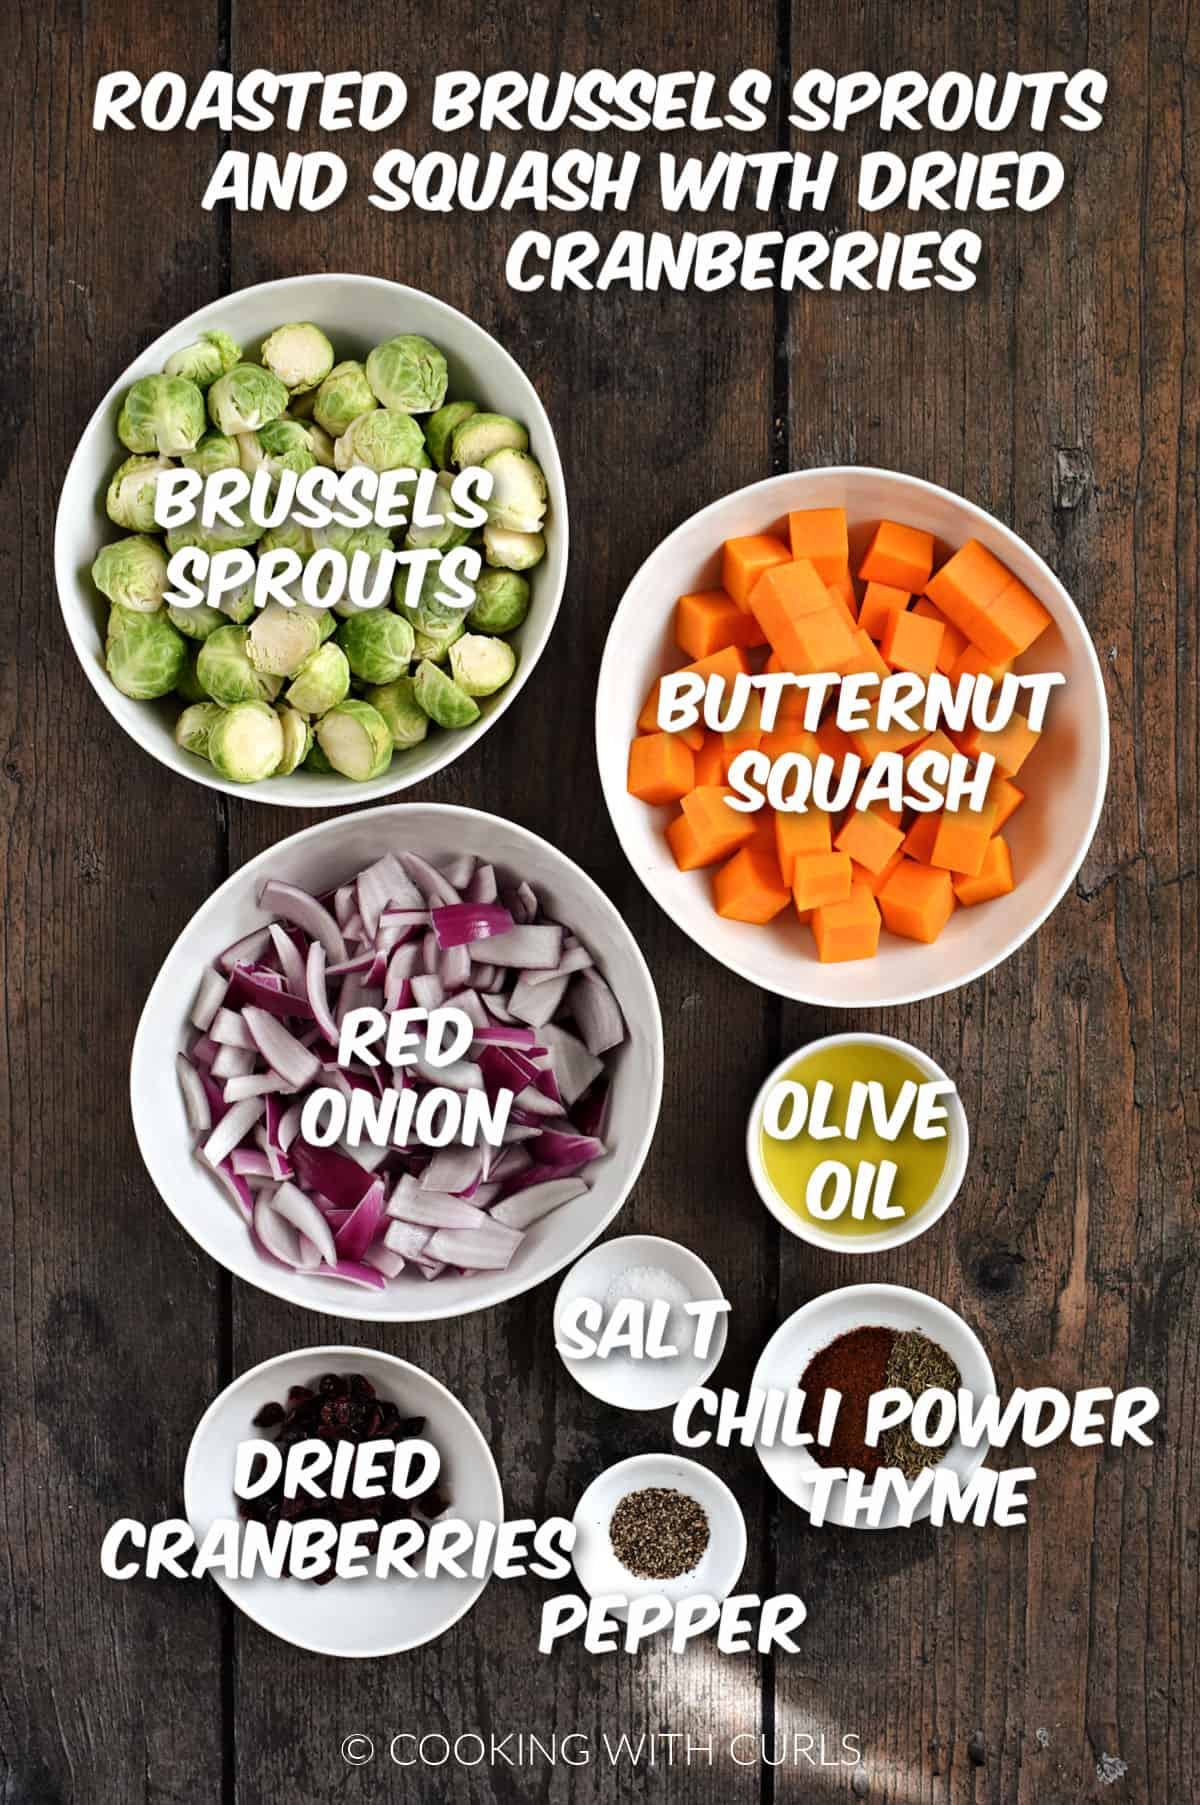 Brussels sprouts, butternut squash, onion, oil, seasonings, and dried cranberries in bowls.